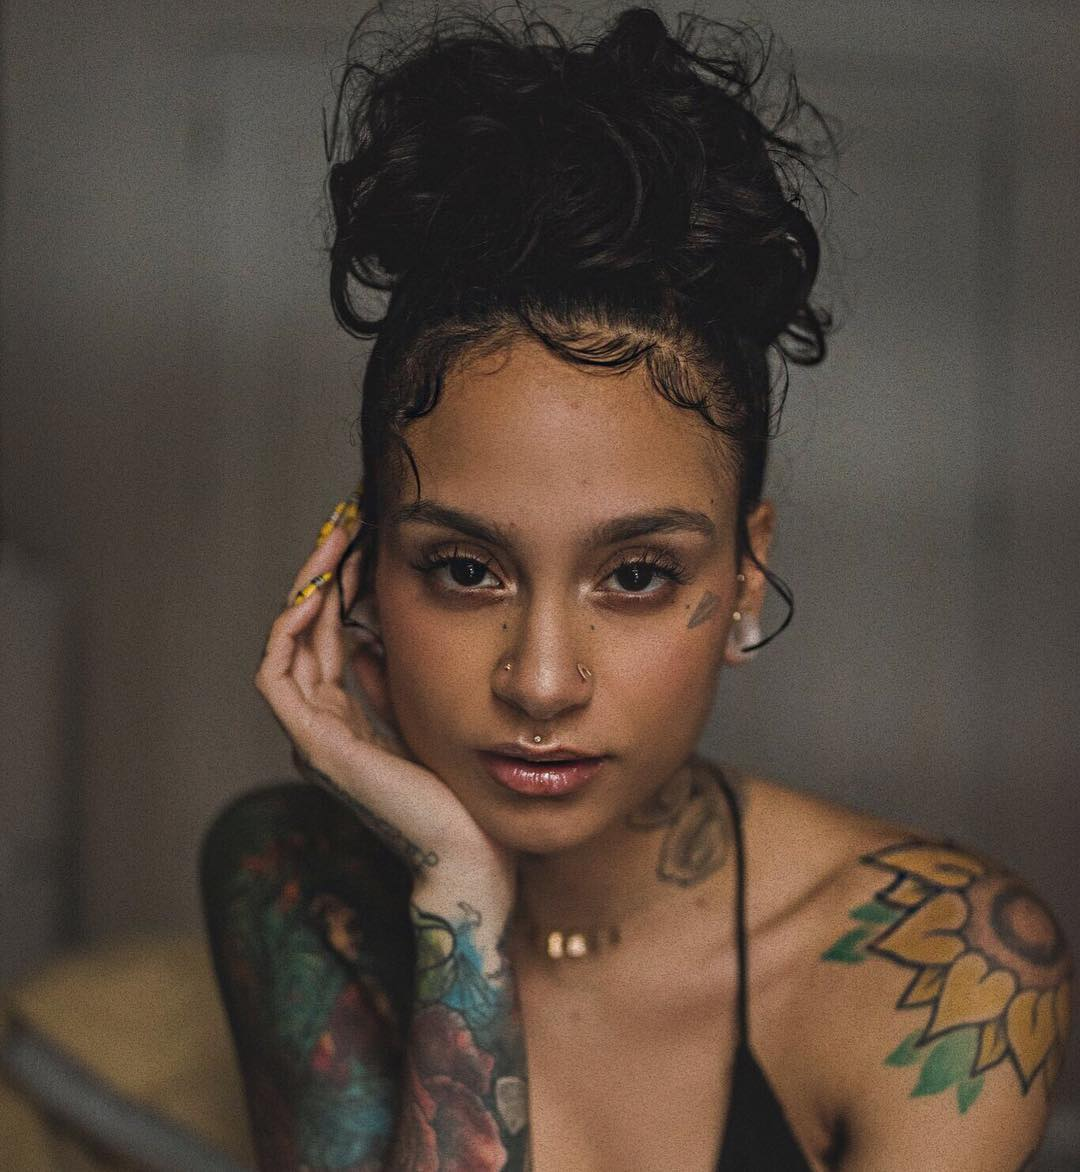 Kehlani net worth